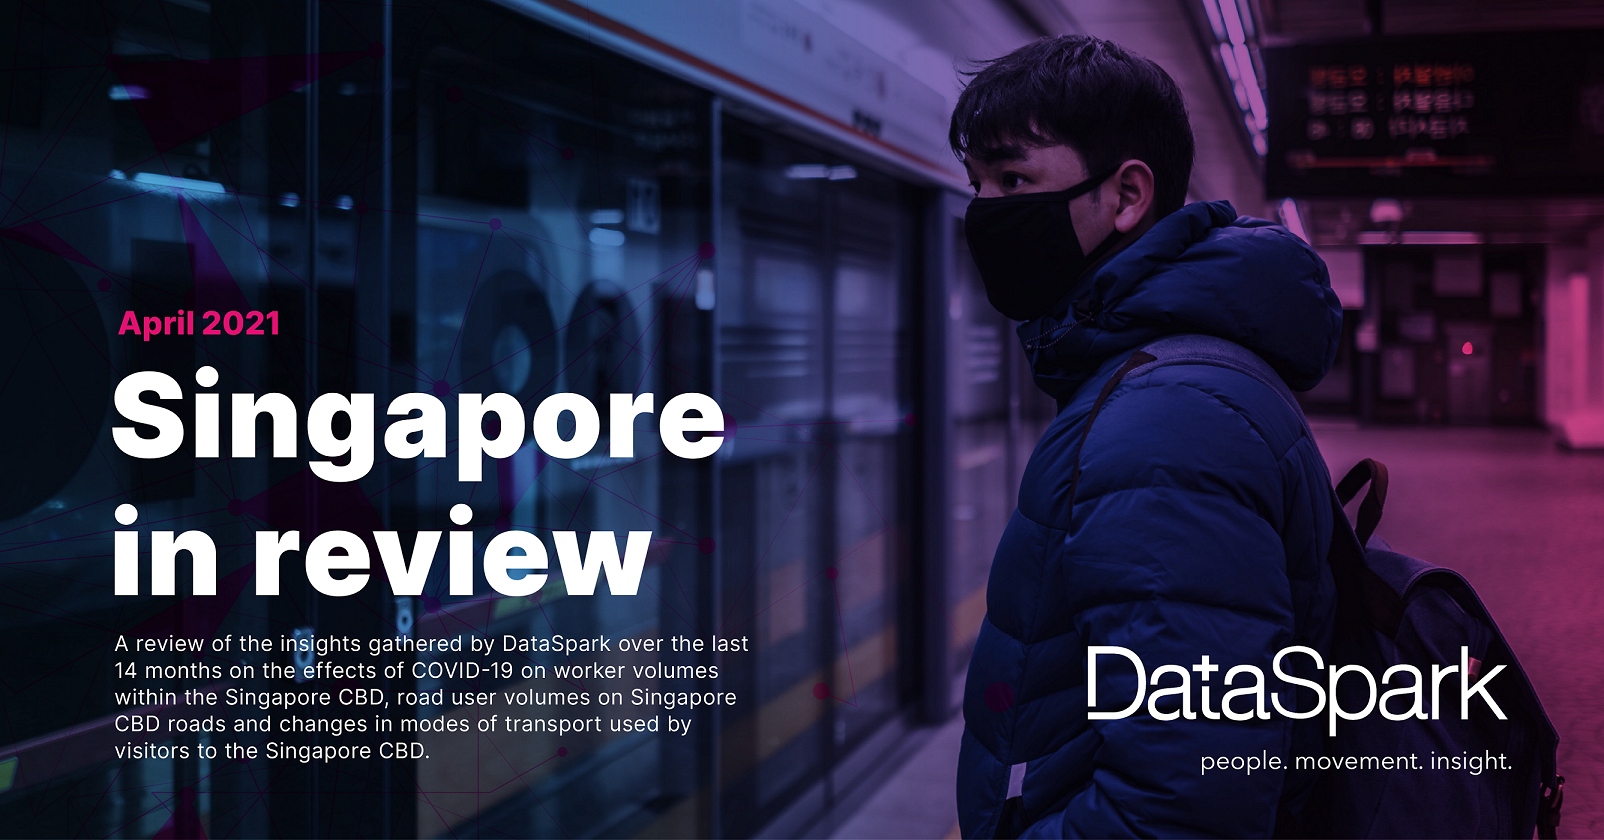 DataSpark Singapore in review